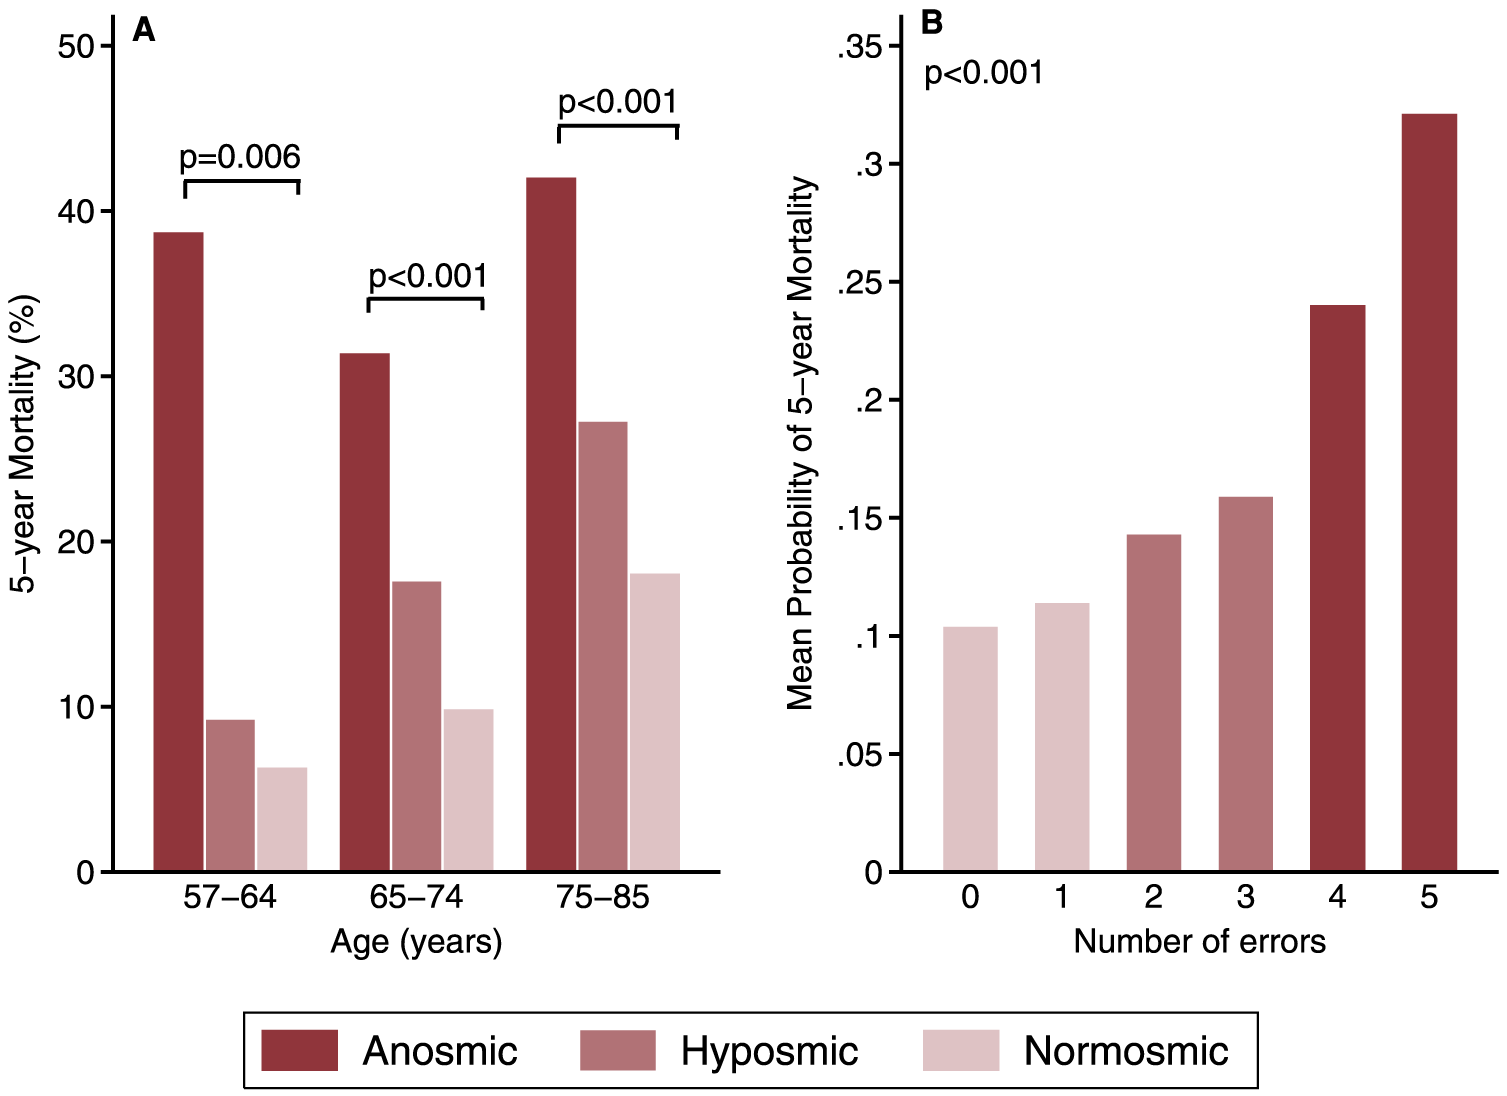 Figure 1 aus Citation: Pinto JM, Wroblewski KE, Kern DW, Schumm LP, McClintock MK (2014) Olfactory Dysfunction Predicts 5-Year Mortality in Older Adults. PLoS ONE 9(10): e107541. doi:10.1371/journal.pone.0107541